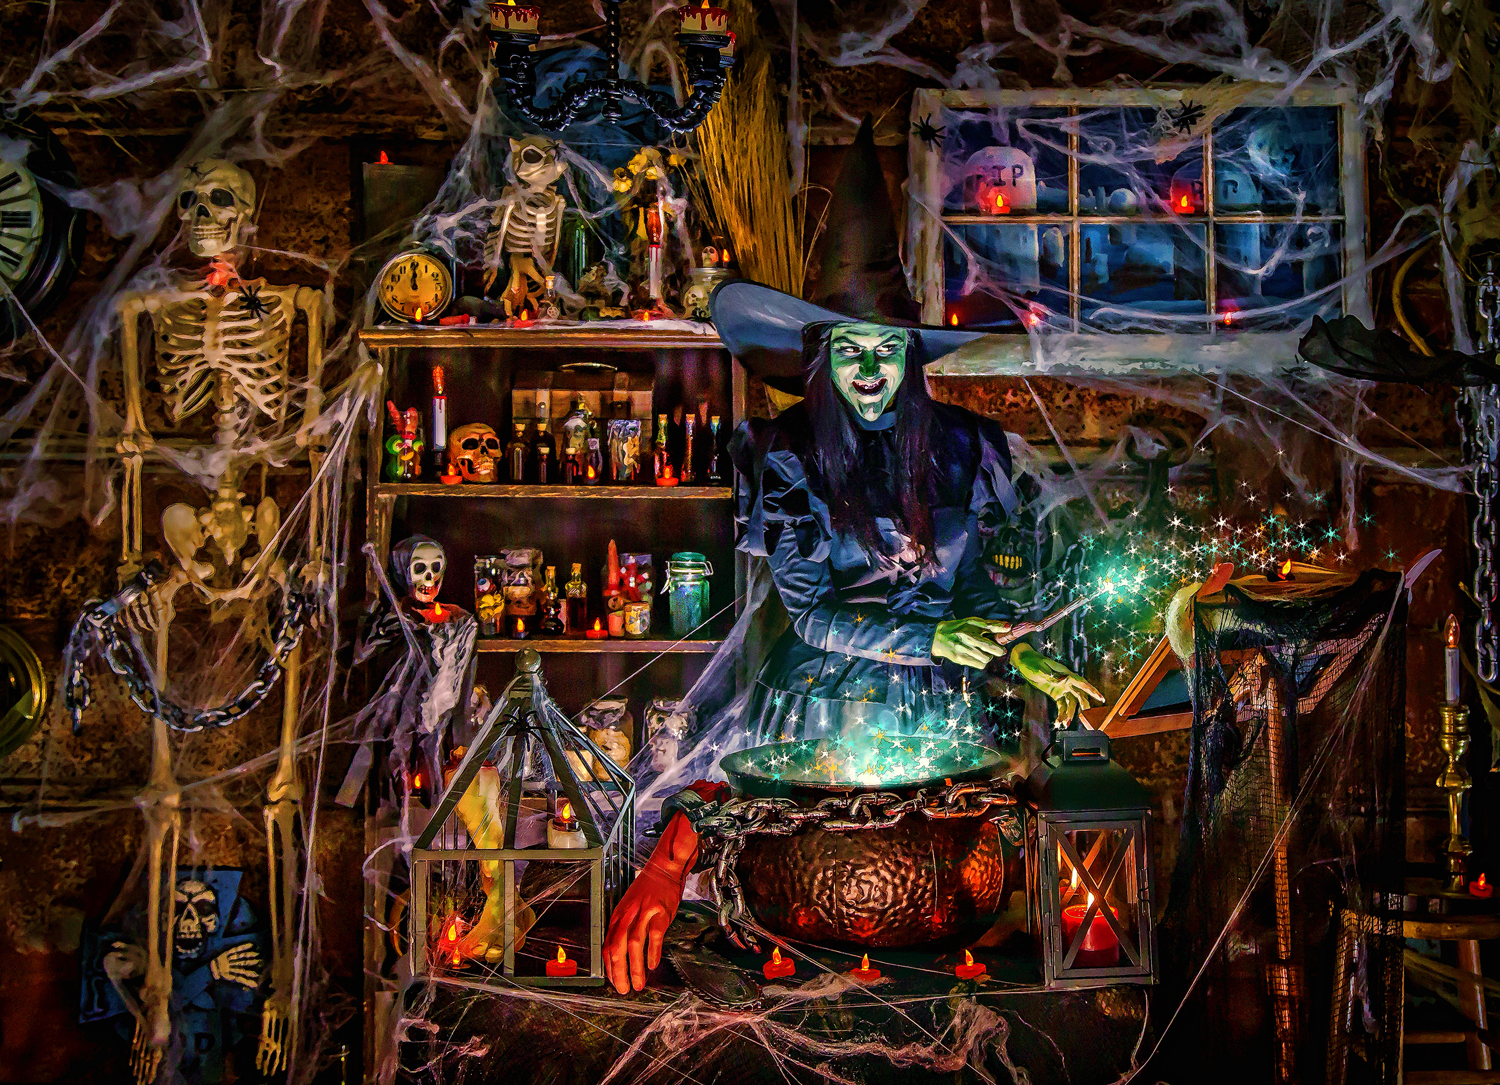 Vermont Christmas Company Witches Brew - 1000 Piece Jigsaw Puzzle